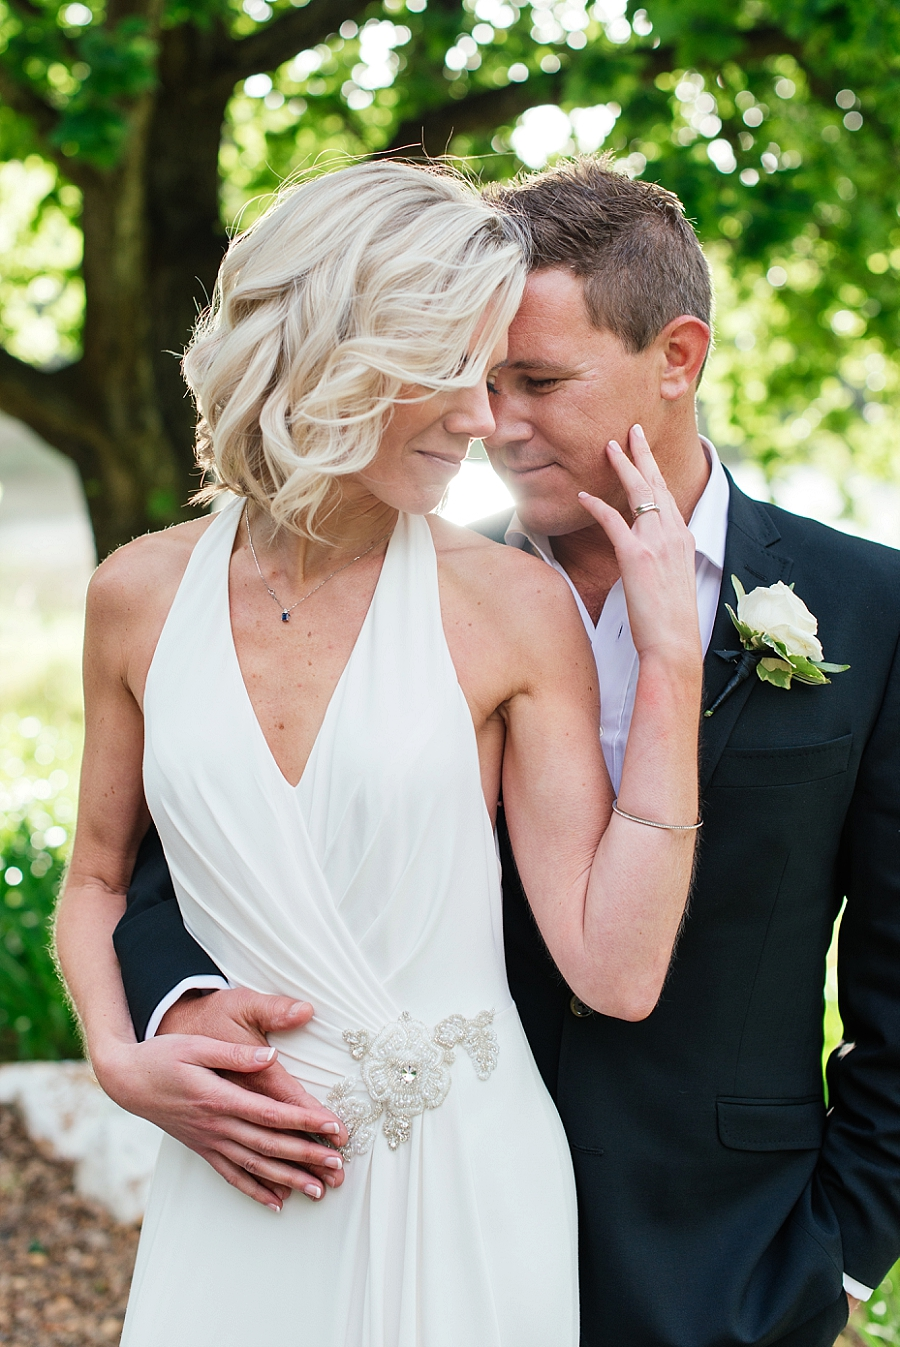 Darren Bester Photography - Cape Town Wedding Photographer - Lee and Lyall Johnson_0084.jpg